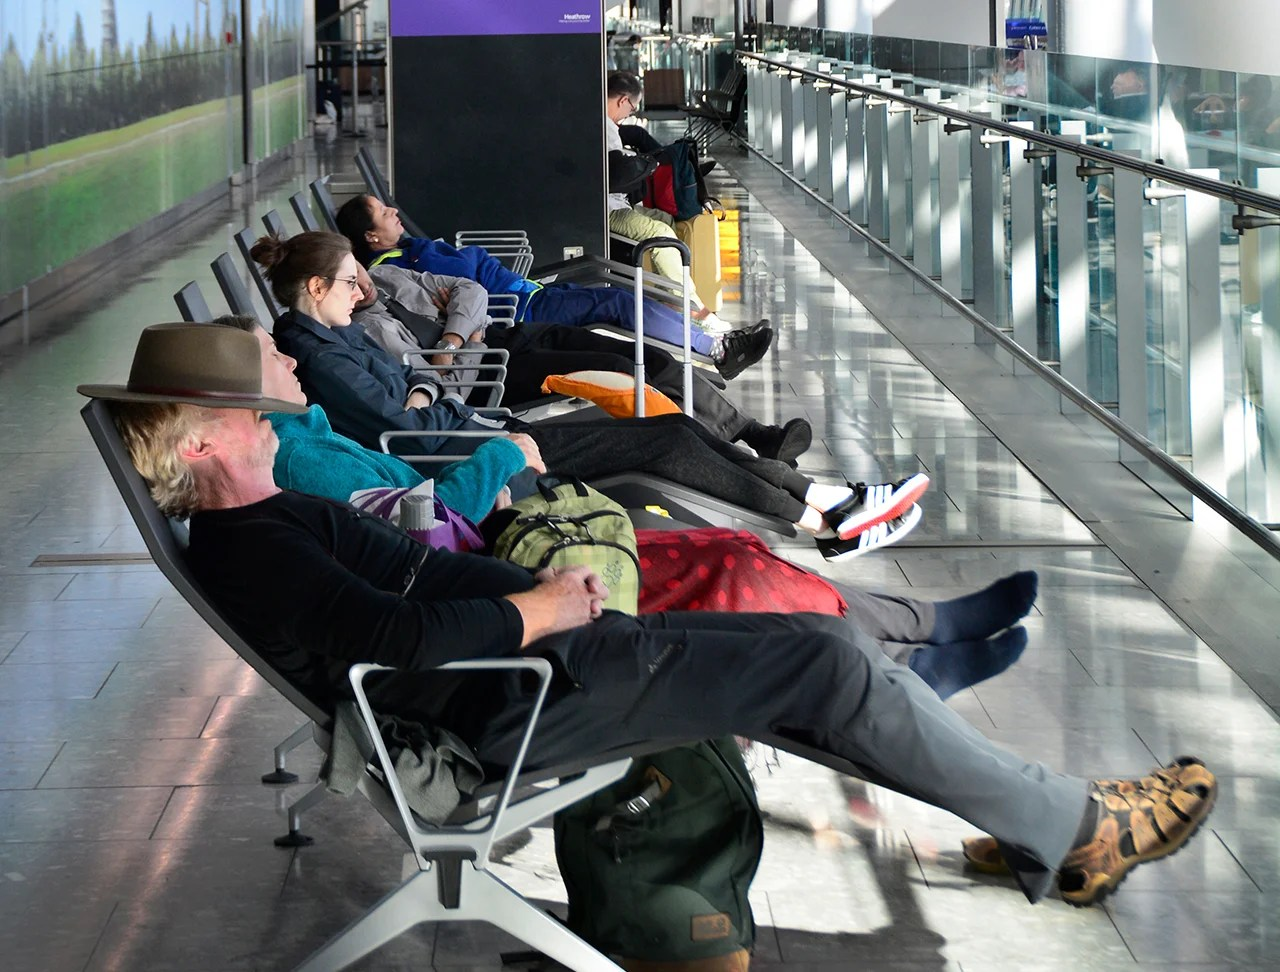 Gate bench armrests are the second dirtiest place at the airport, with an average of 21,630 CFU/sq. (Photo by Robert Alexander/Getty Images)